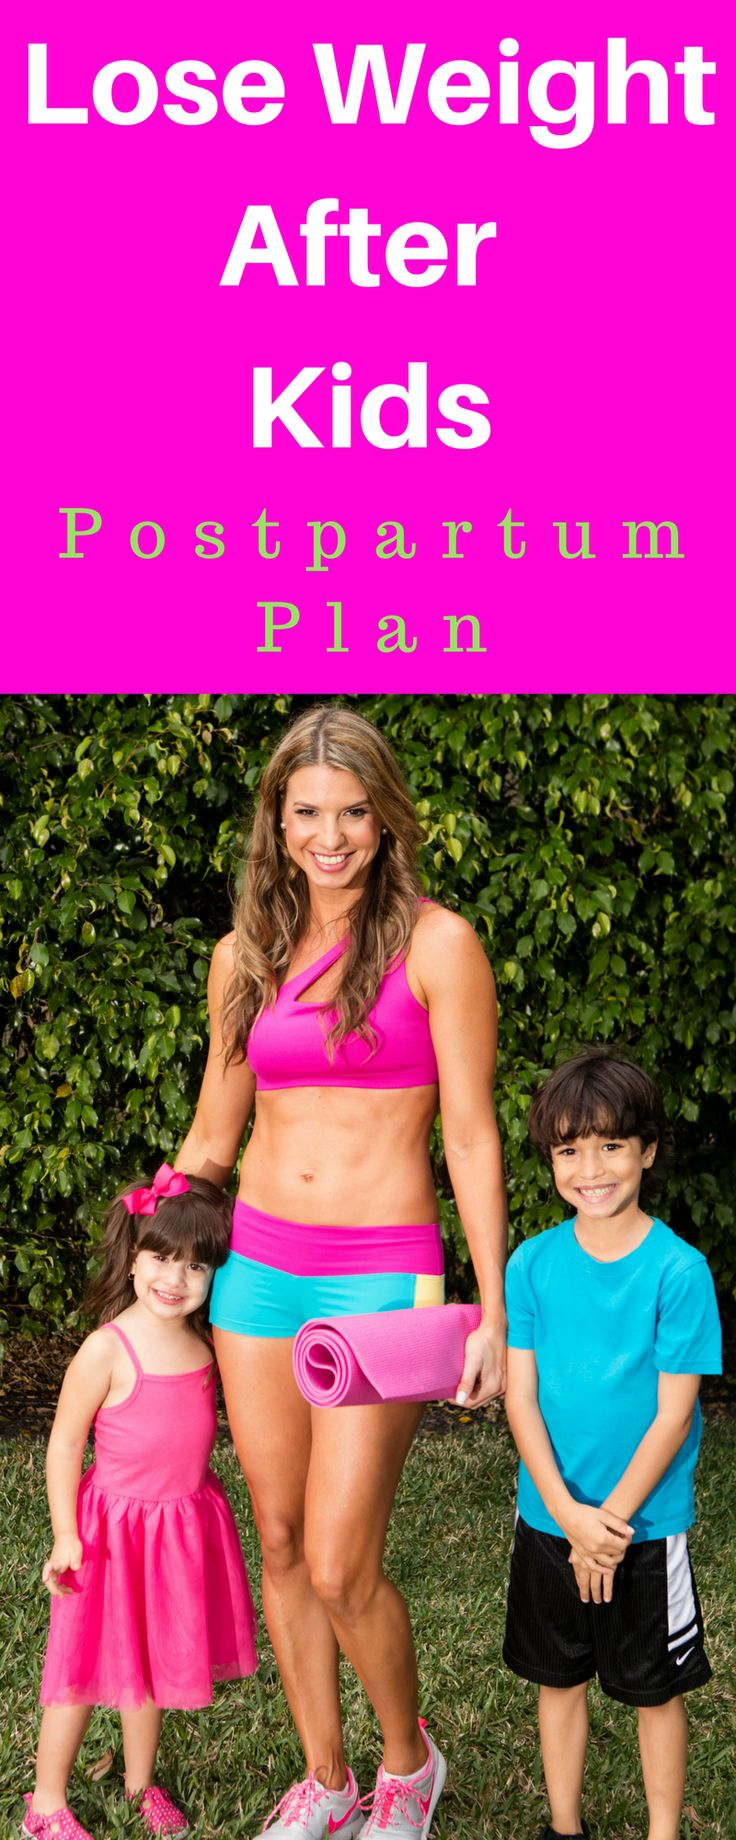 How to lose weight after kids and get in even better shape than before pregnancy.